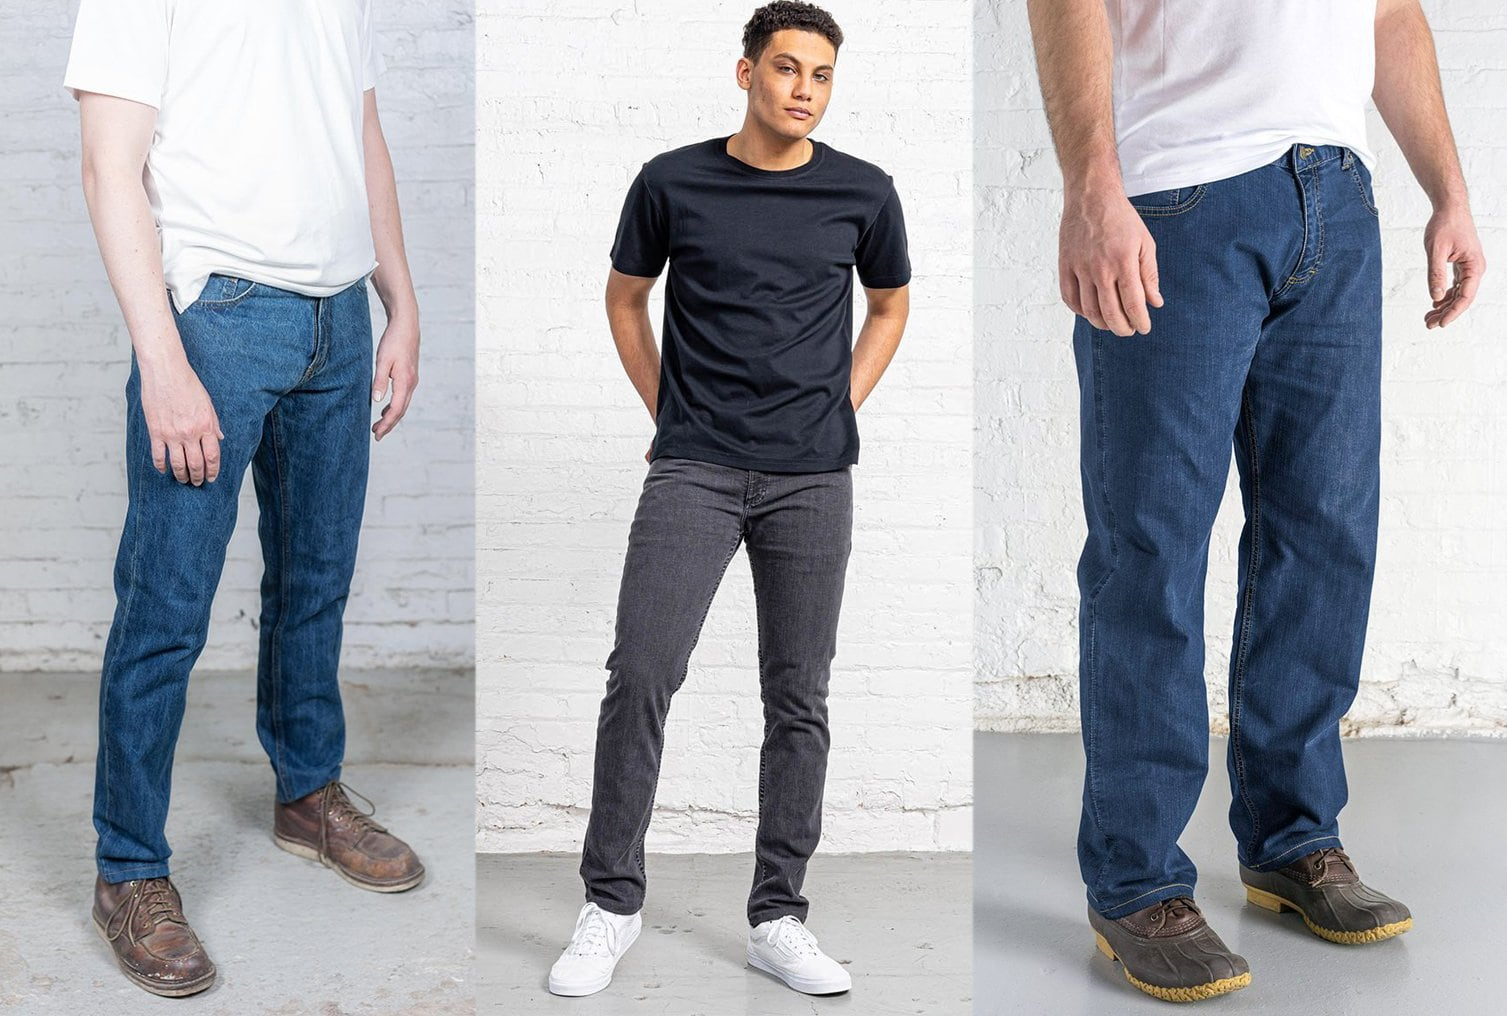 Dearborn Denim offers men's jeans in Tailored Fit, $65 - $70; Slim Fit, $65 - $75; and Relaxed Fit, $65 - $75